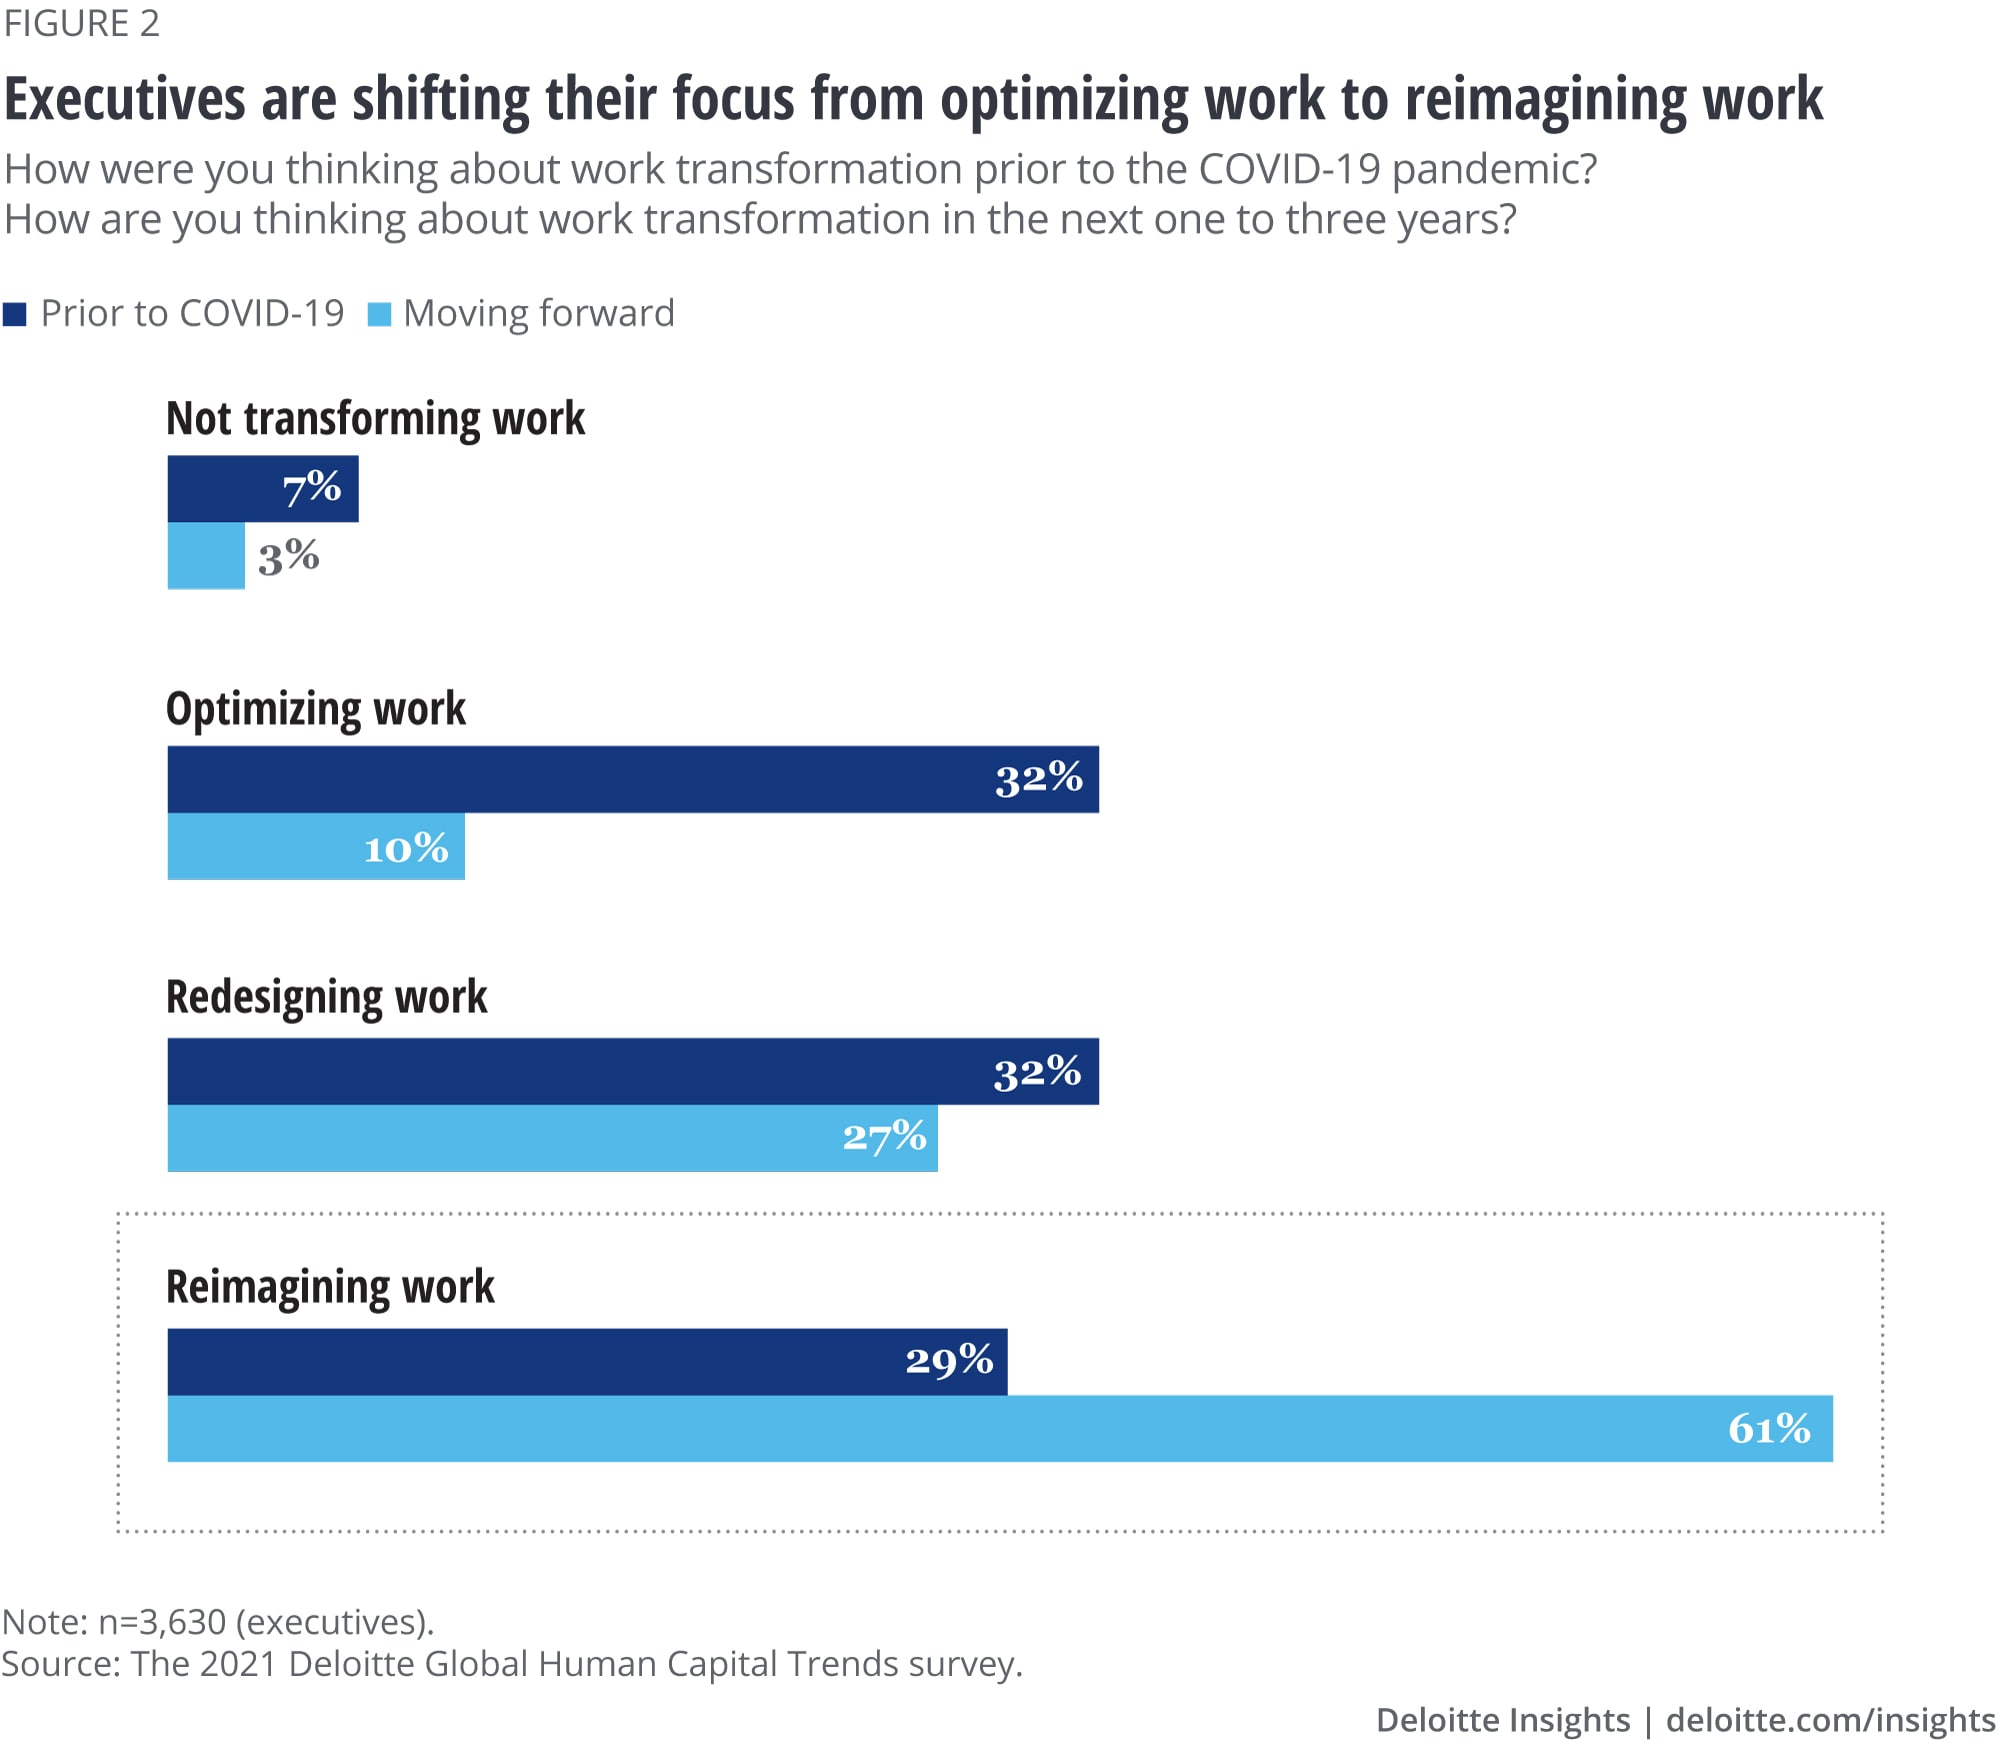 Executives are shifting their focus from optimizing work to reimagining work